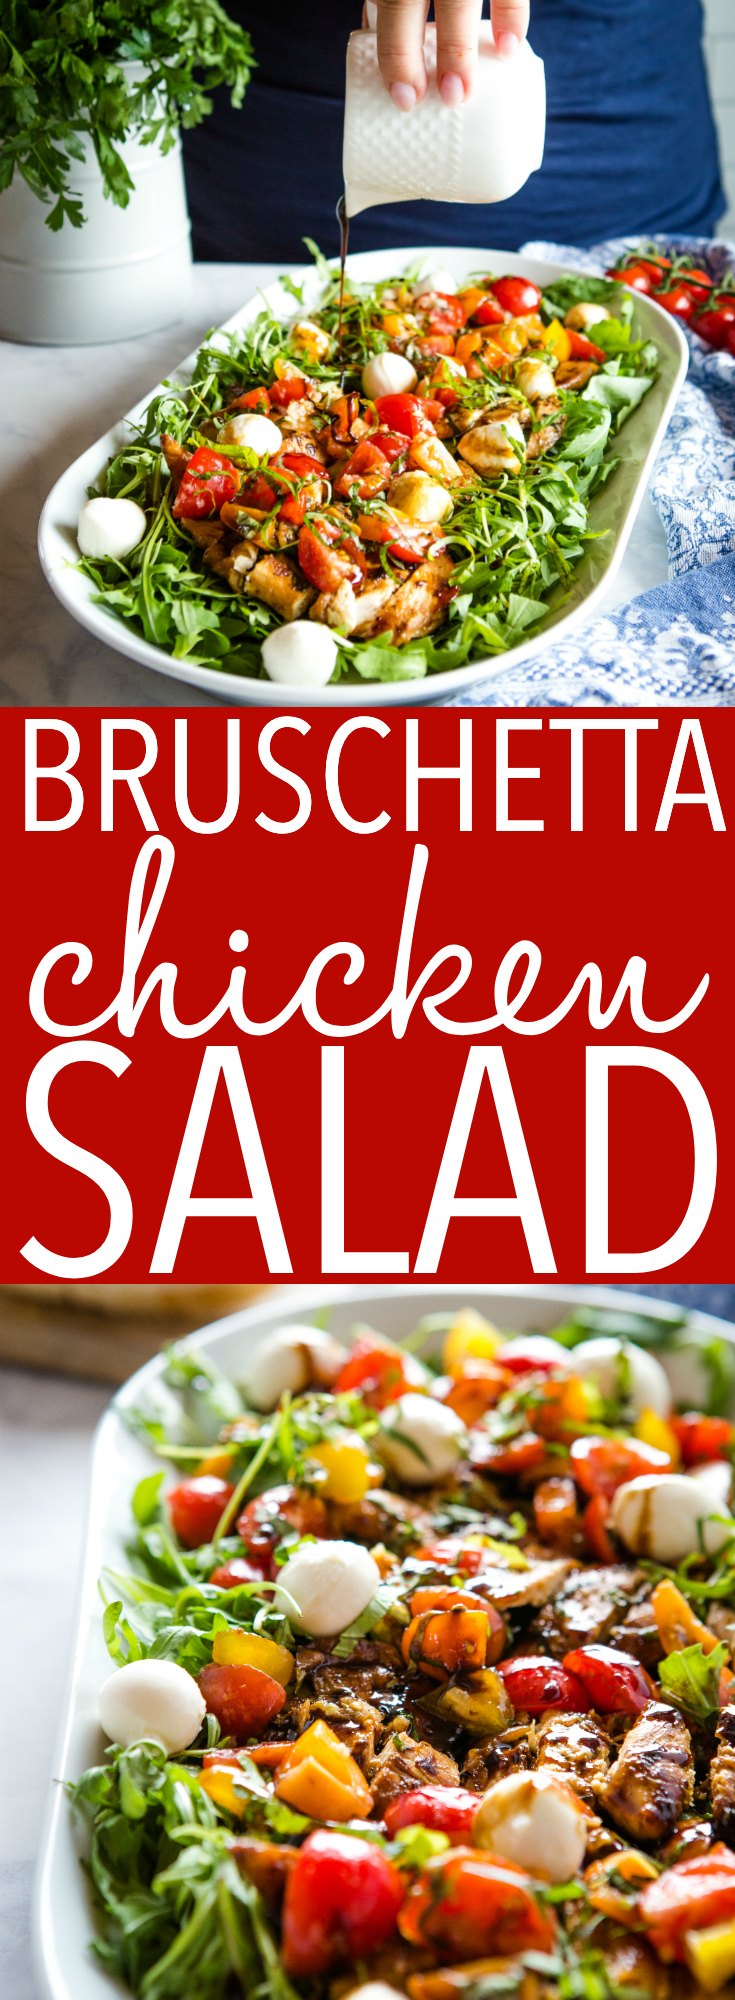 This Bruschetta Chicken Salad is a delicious low-carb lunch or dinner made with simple marinated chicken breast, easy homemade bruschetta and balsamic dressing! Great for meal prep! Recipe from thebusybaker.ca! #bruschetta #chicken #salad #lowcarb #healthy #veggies #fresh #health #lowfat #lowcalorie #homemade via @busybakerblog